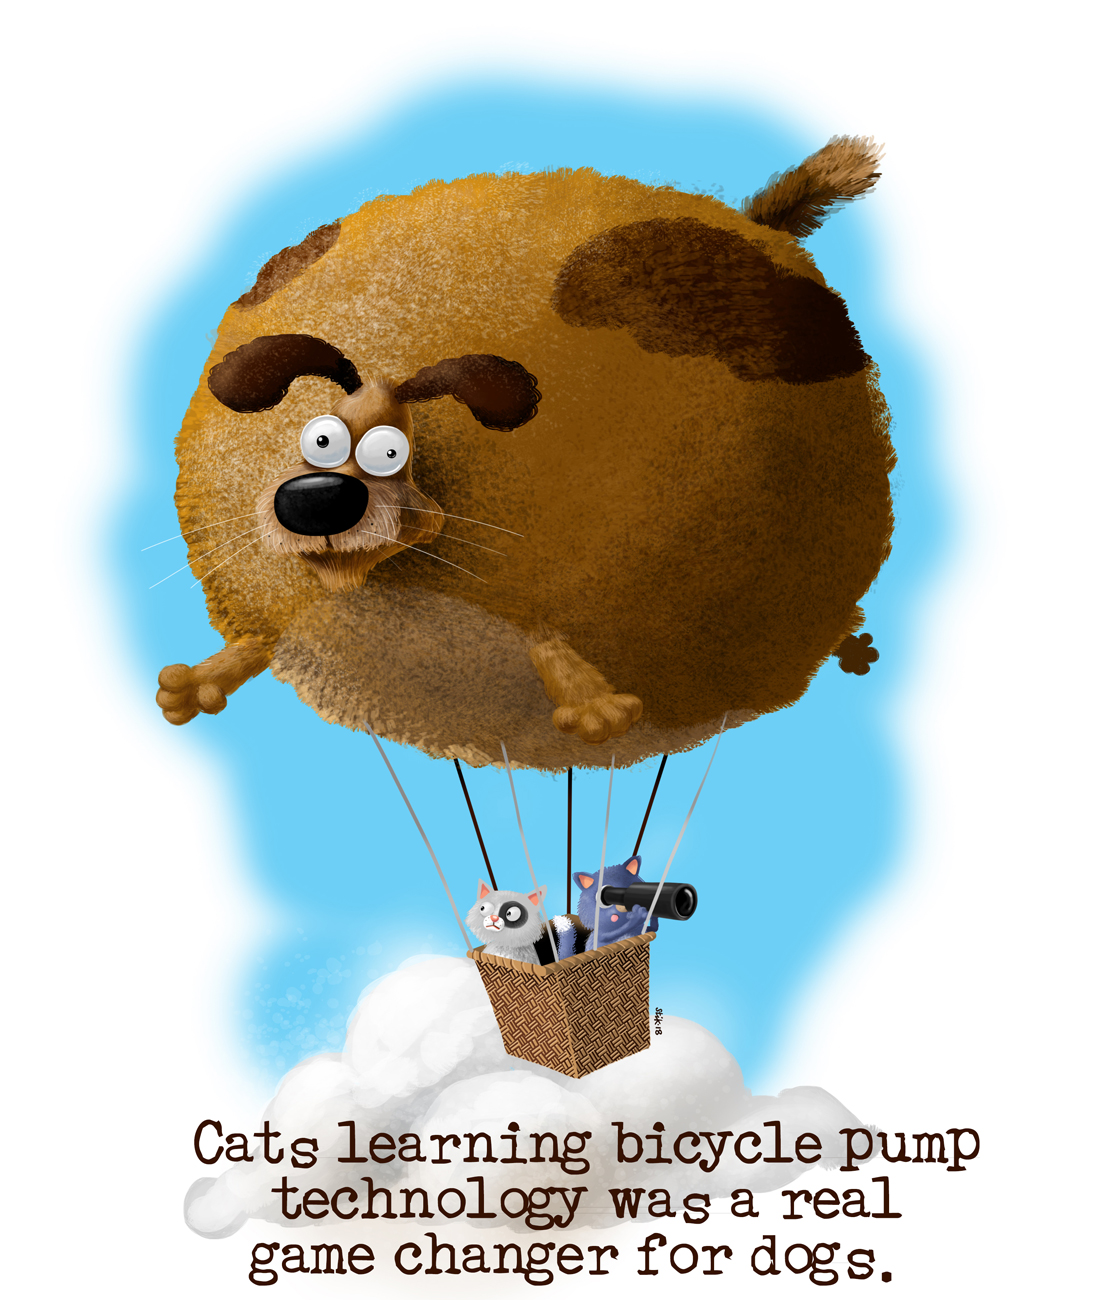 Cats in inflated dog parachute cartoon art